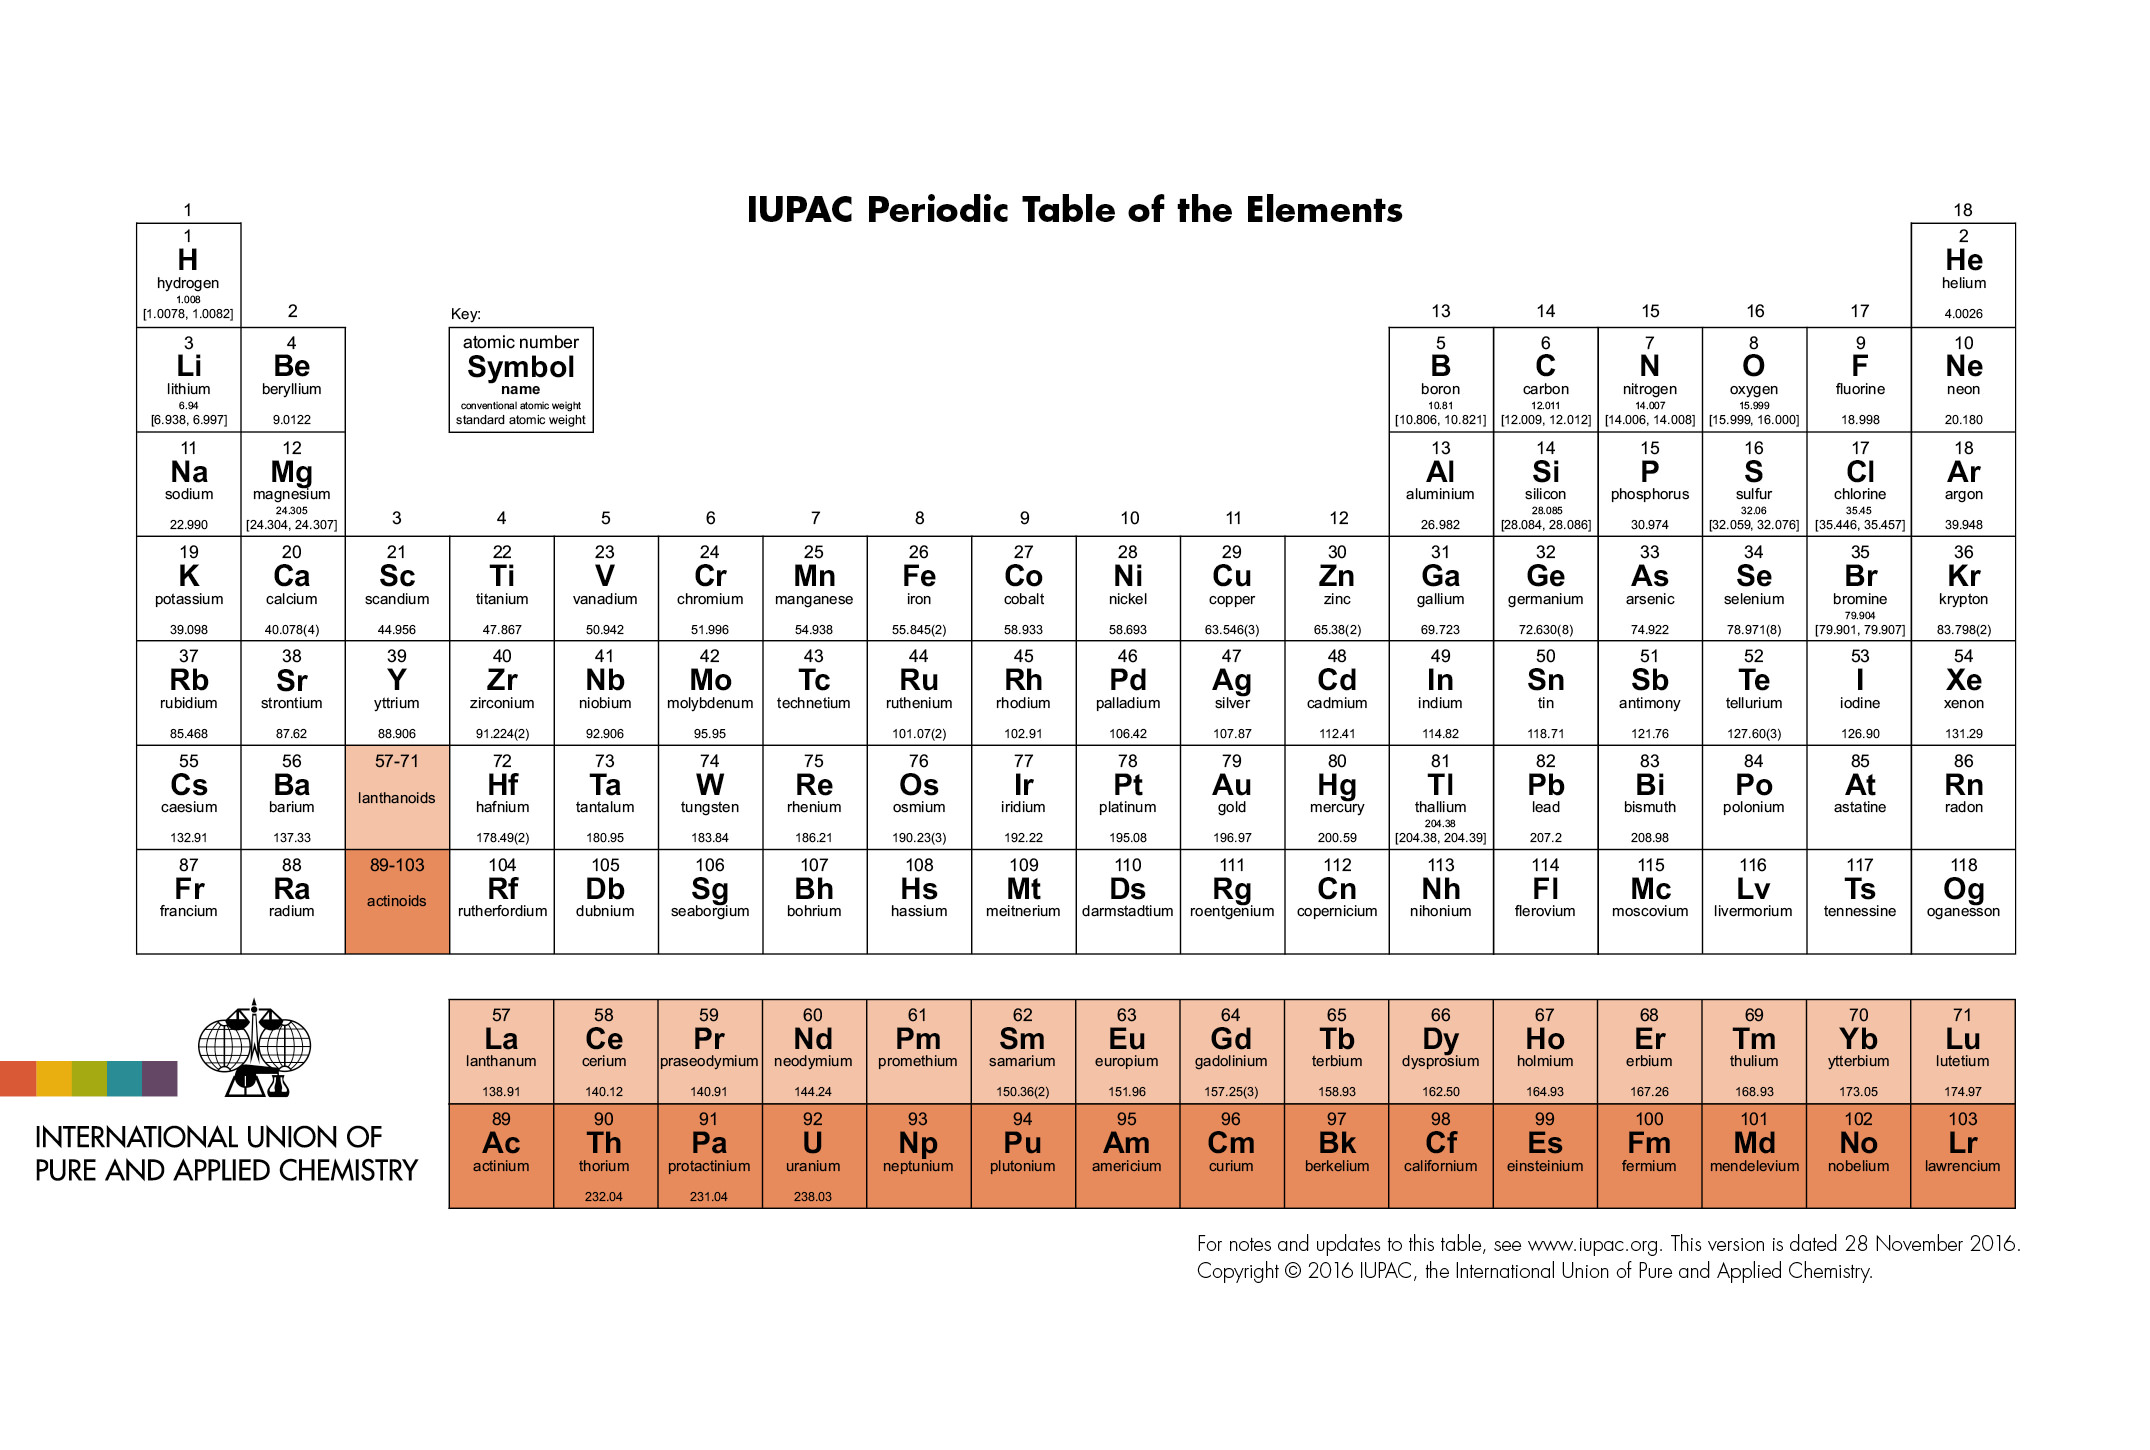 Periodic table of elements iupac international union for Periodic table